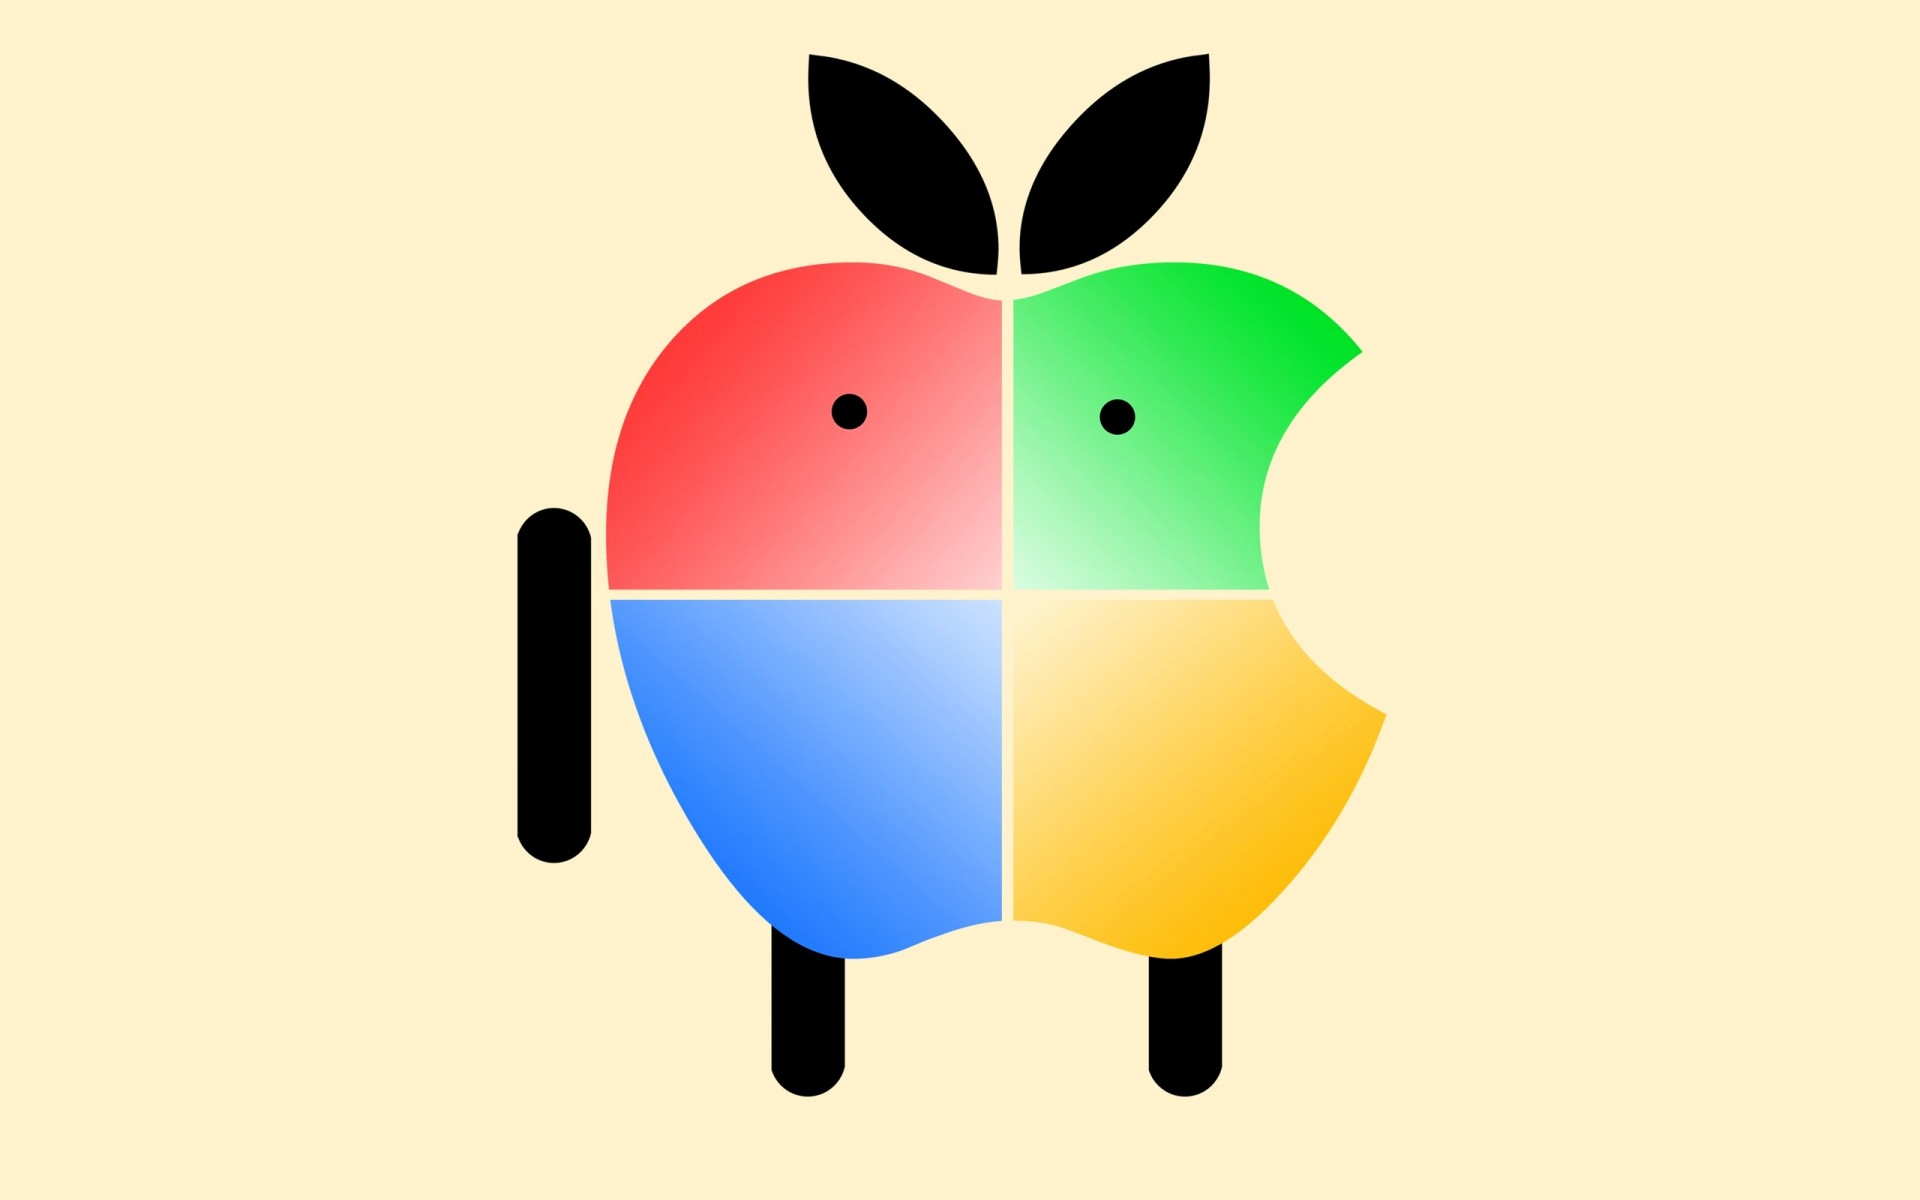 apple illustration symbol vector graphic image desktop design android mascot apple mascot funny tech technology